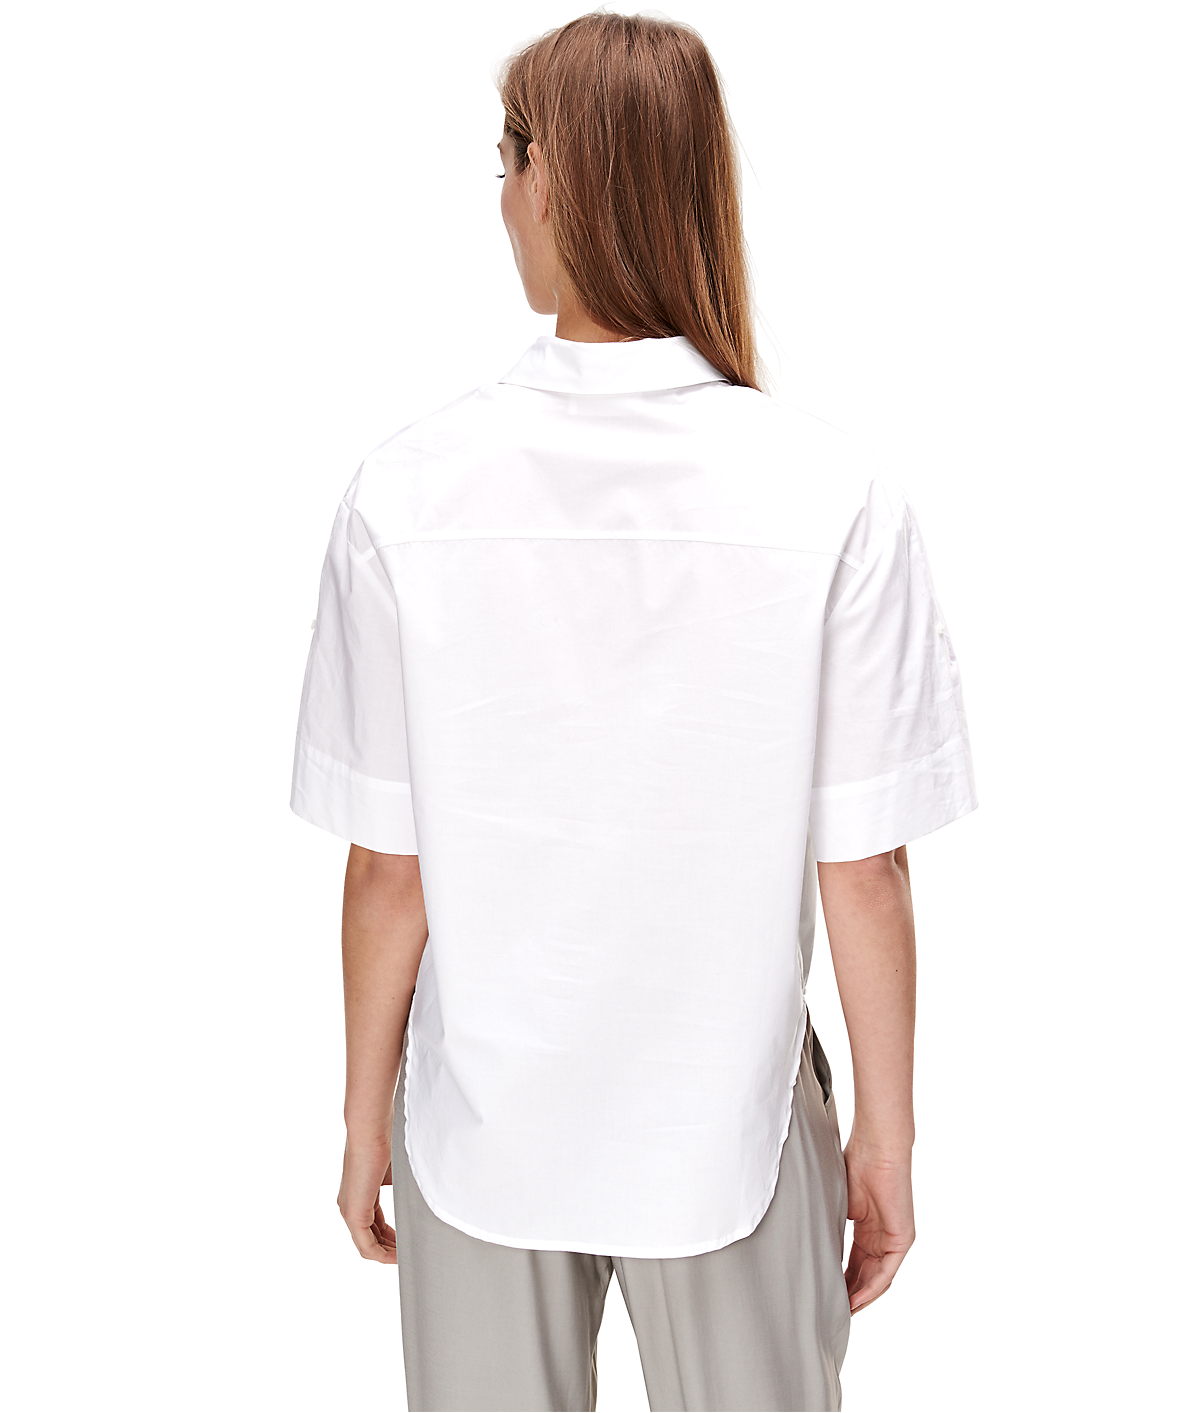 Shirt blouse with short sleeves F1162001 from liebeskind